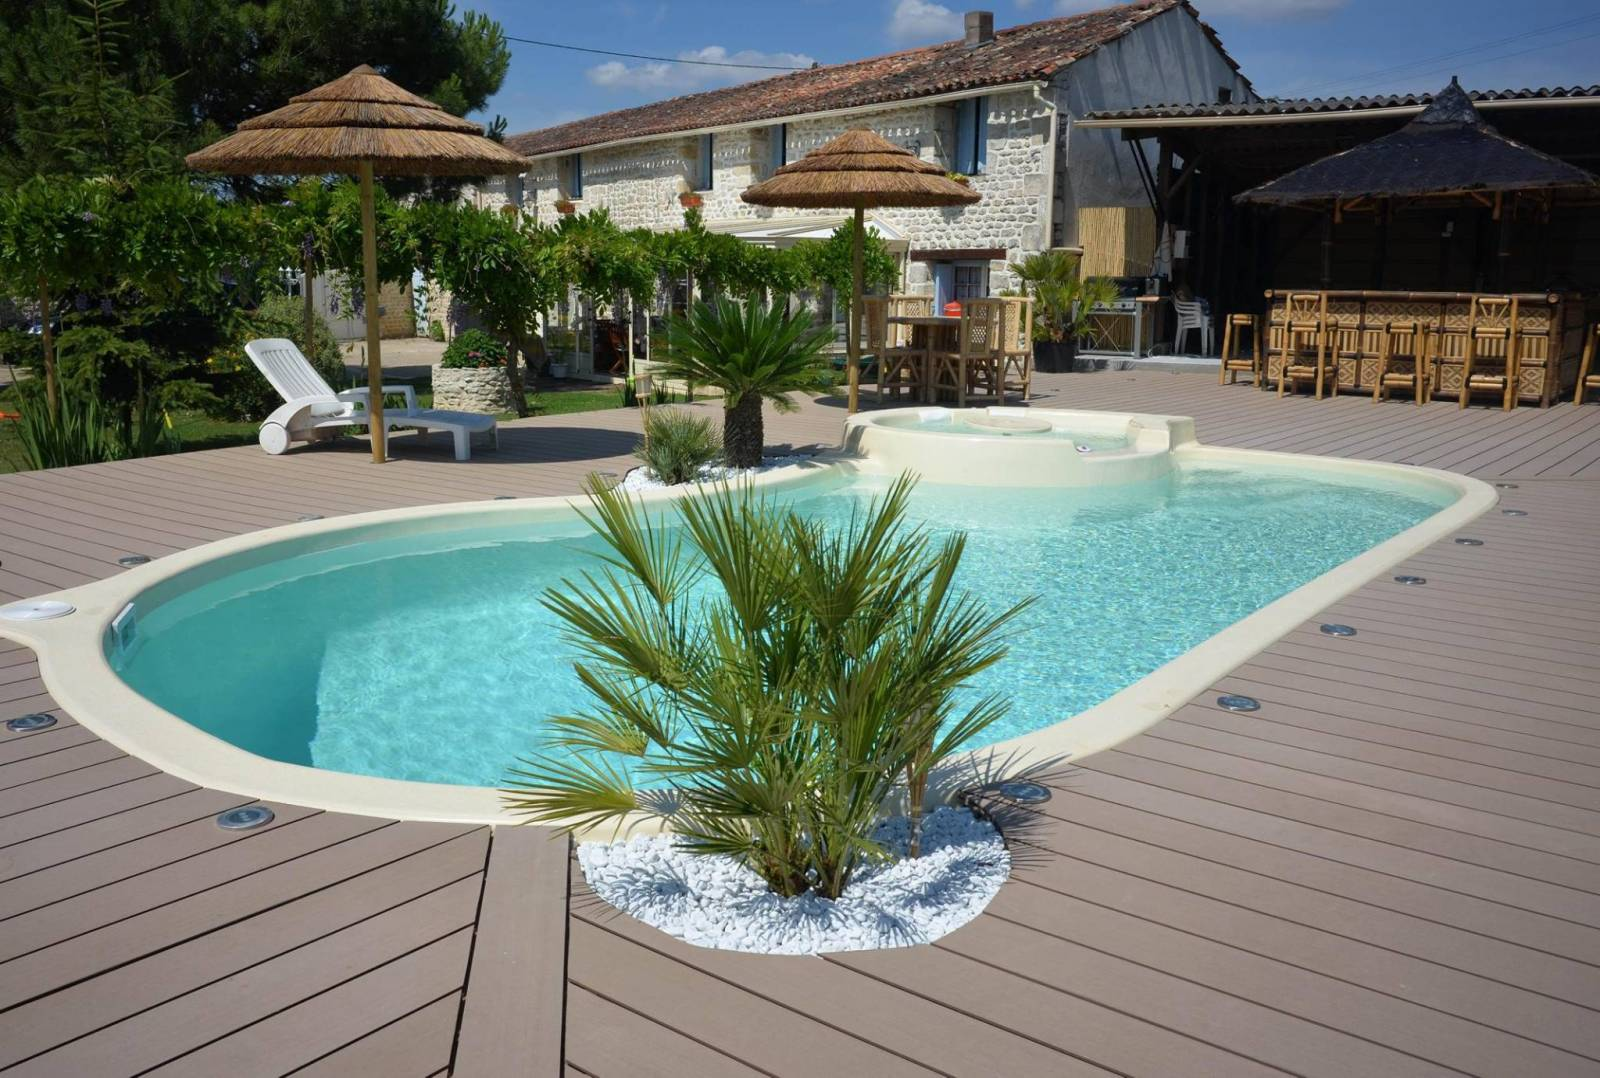 Fabricant de piscines coque montpellier freedom piscines for Piscine avec coque